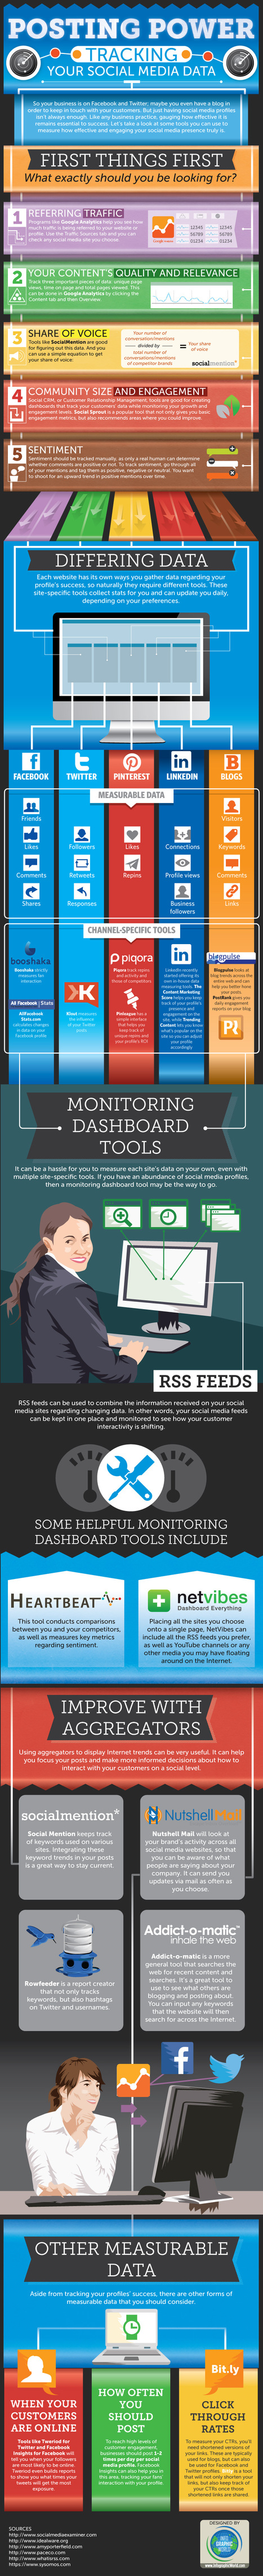 How To Track Your Social Media Data And Measure ROI [INFOGRAPHIC] - AllTwitter | Web Marketing Turistico | Scoop.it